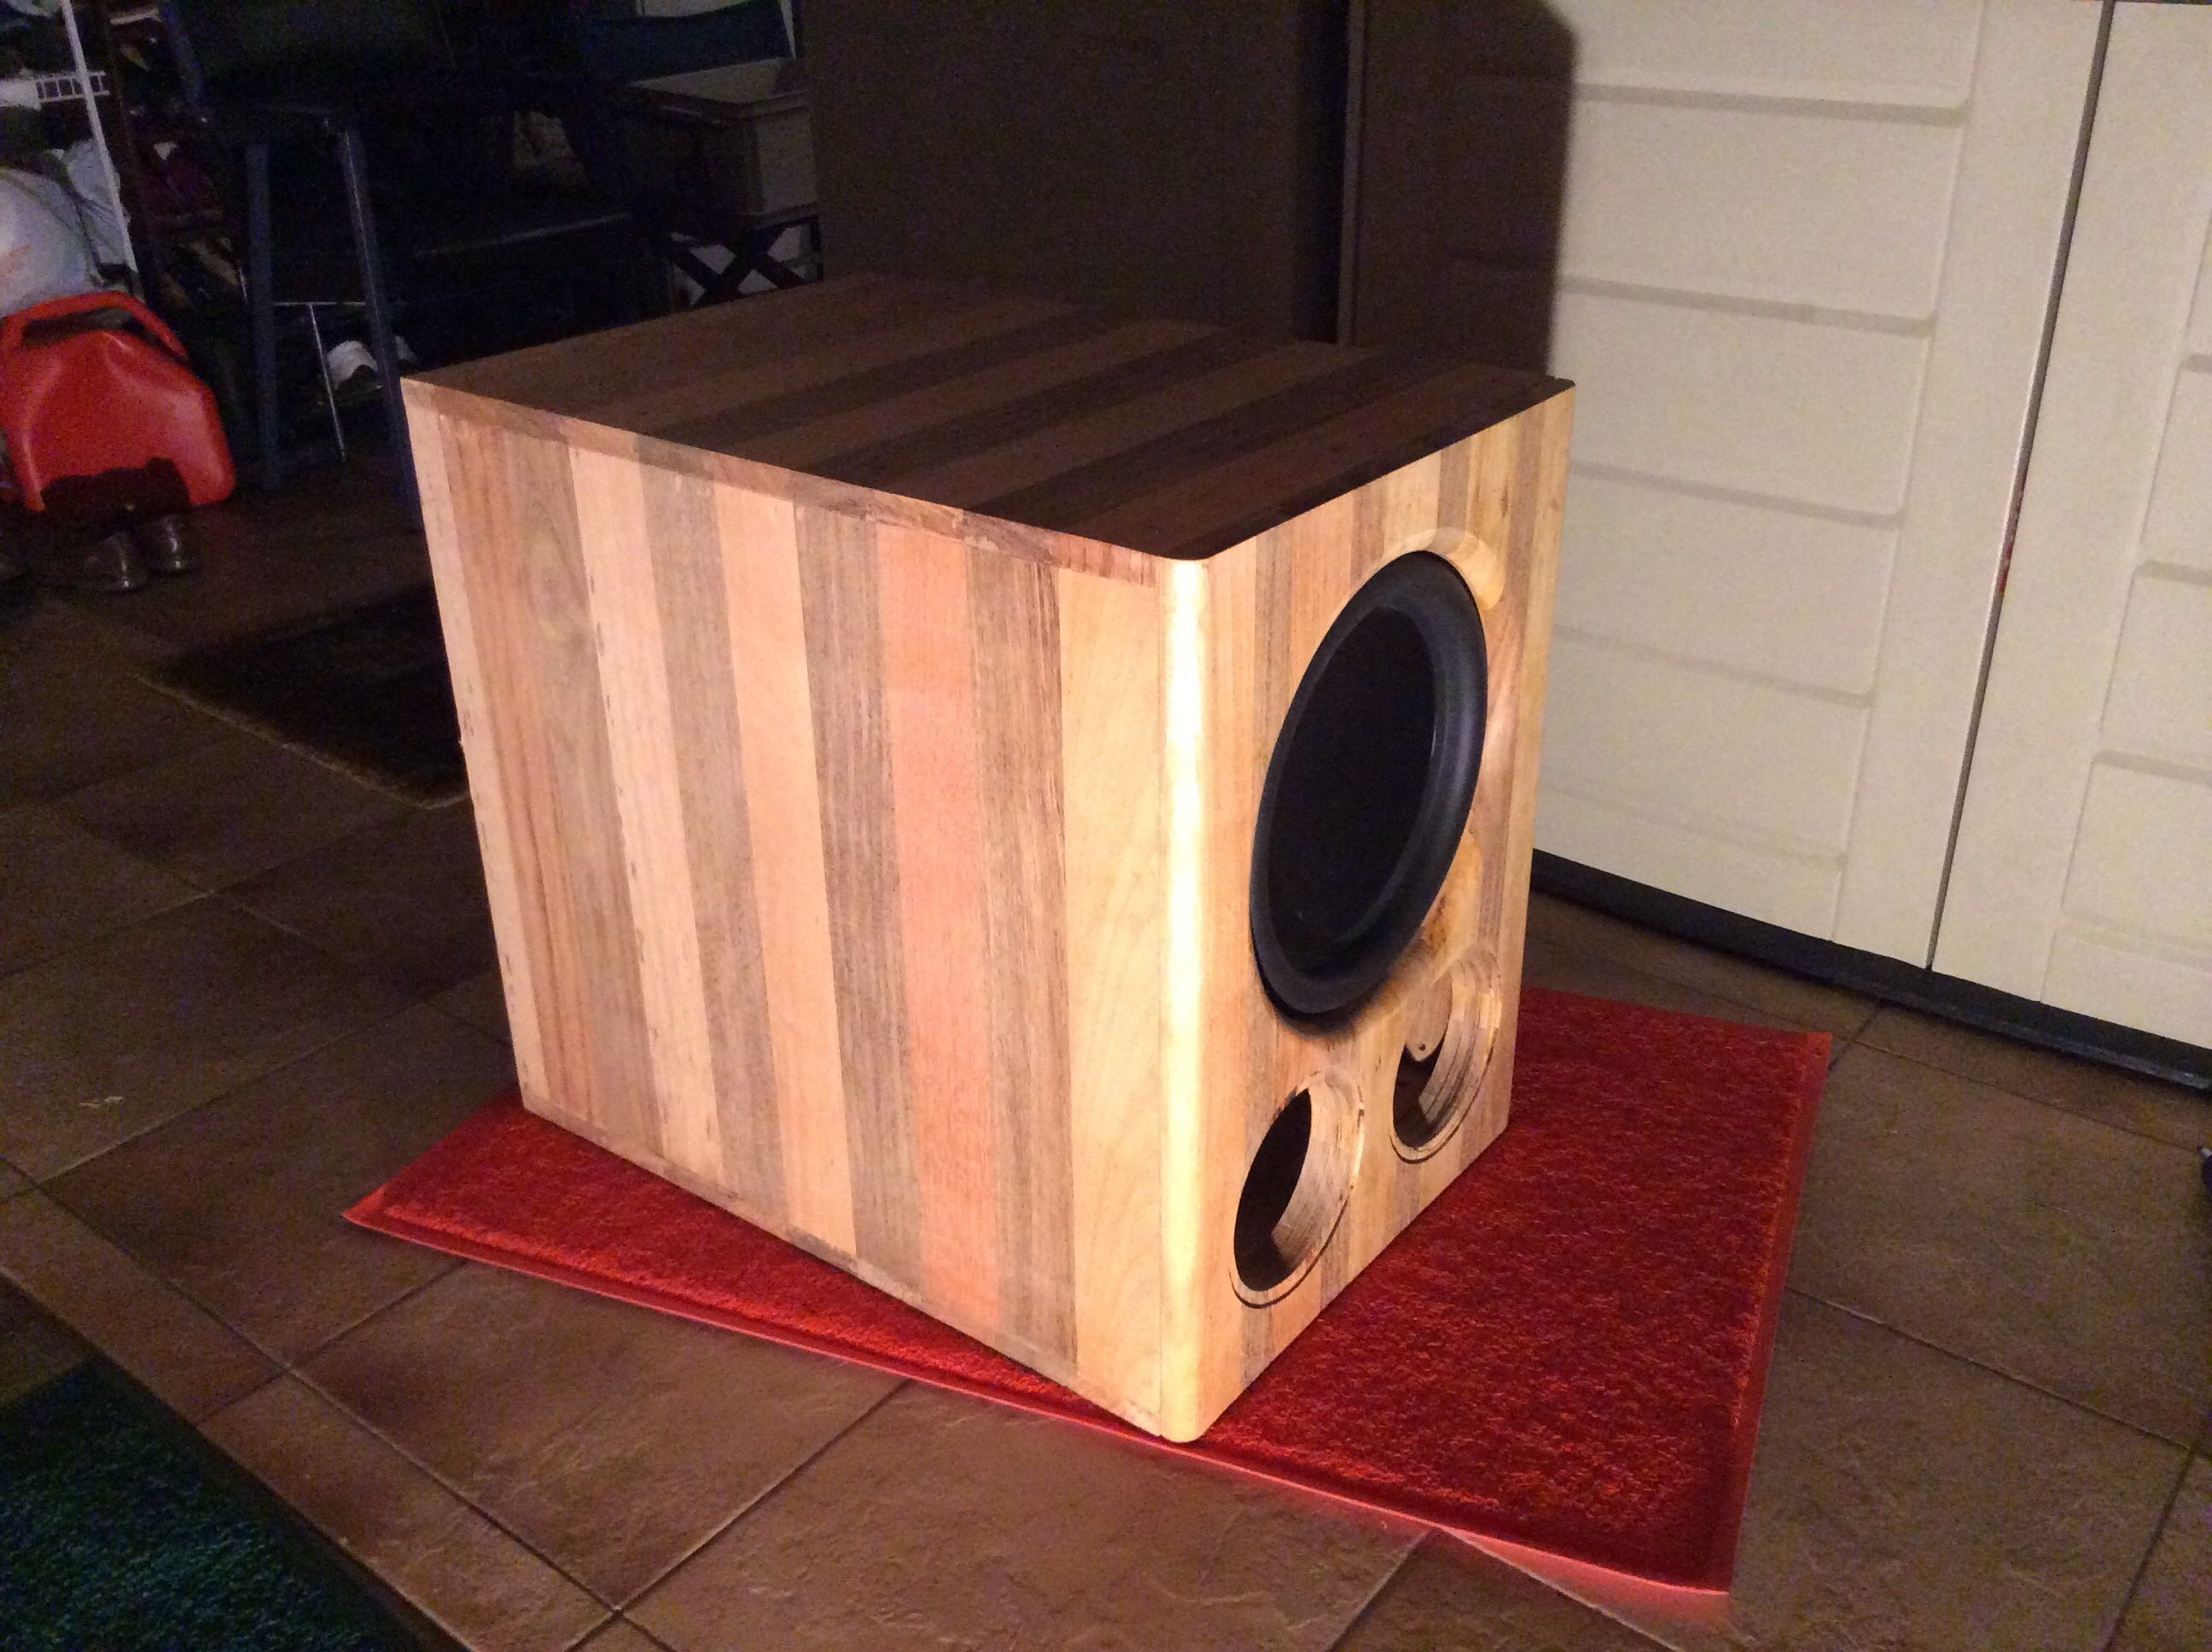 Pin On Speaker Projects